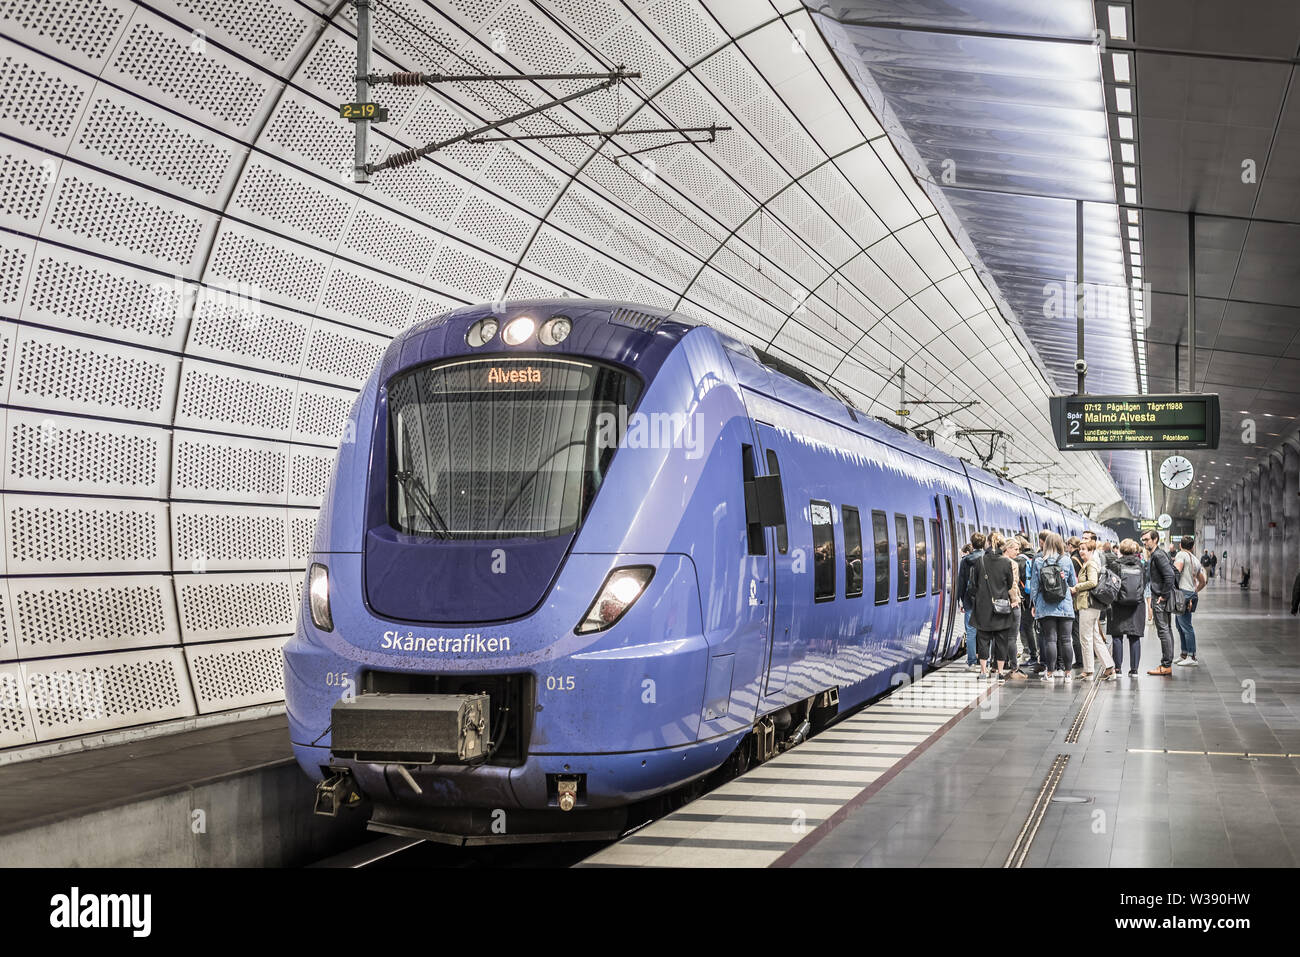 People embark a train at the underground station Triangeln in Malmo, May 21, 2019 - Stock Image